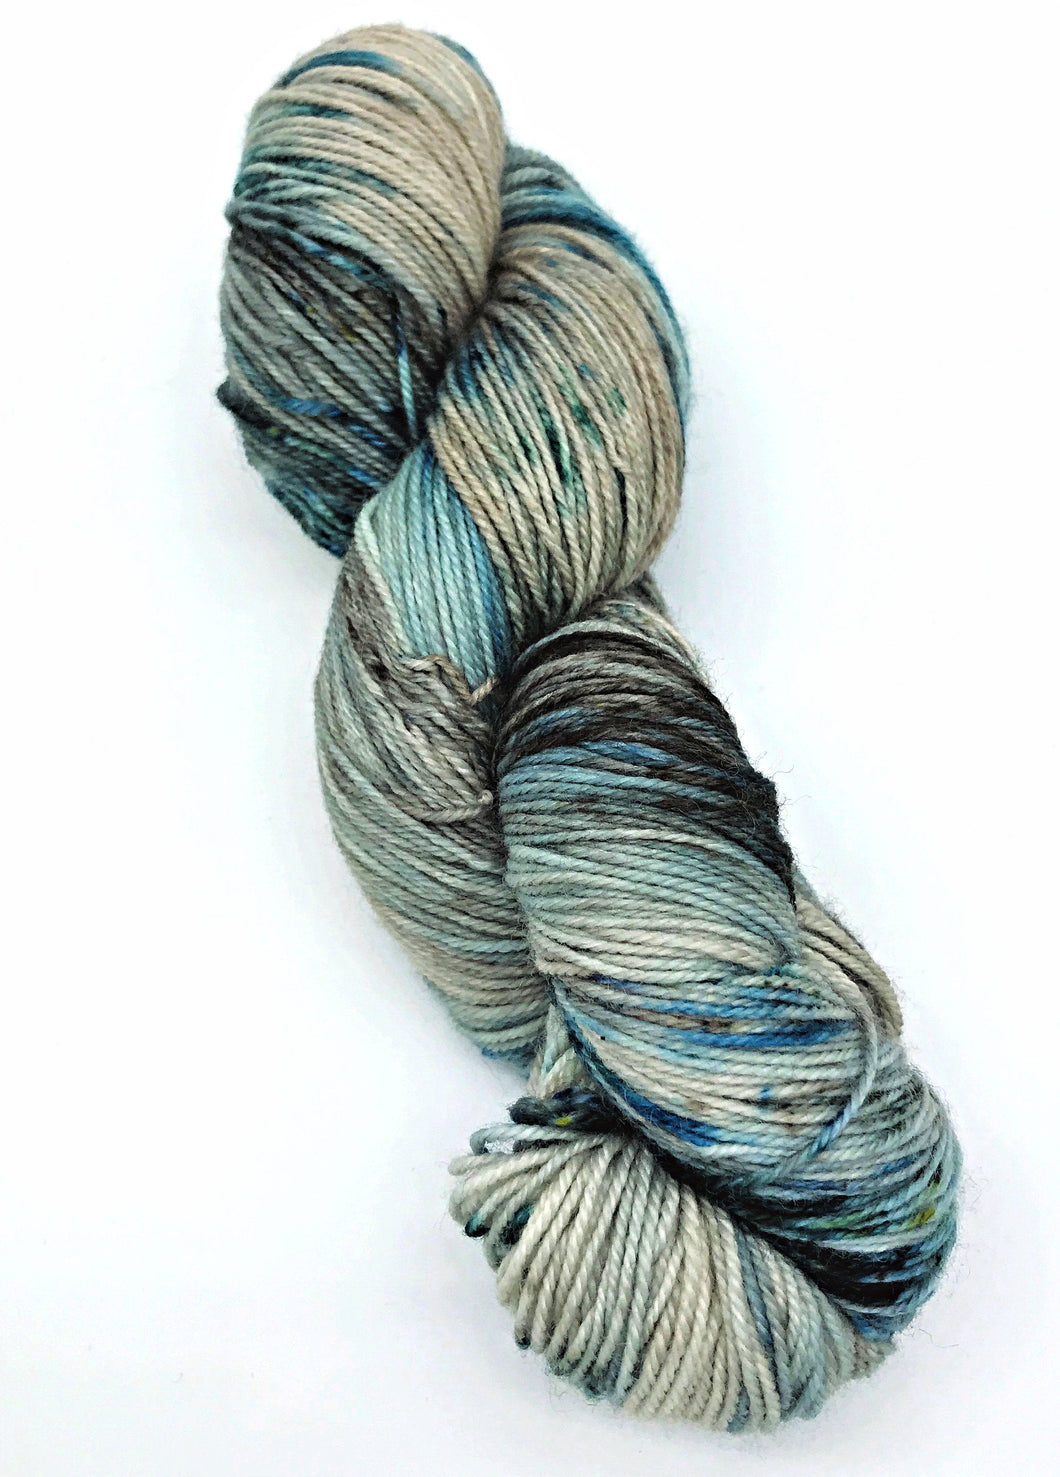 Ice Fields - Hand Dyed Fingering - 3 PLY - 80/20 SW Merino/ Nylon in blue and ecru for crochet and knitting, shawls, sock yarn